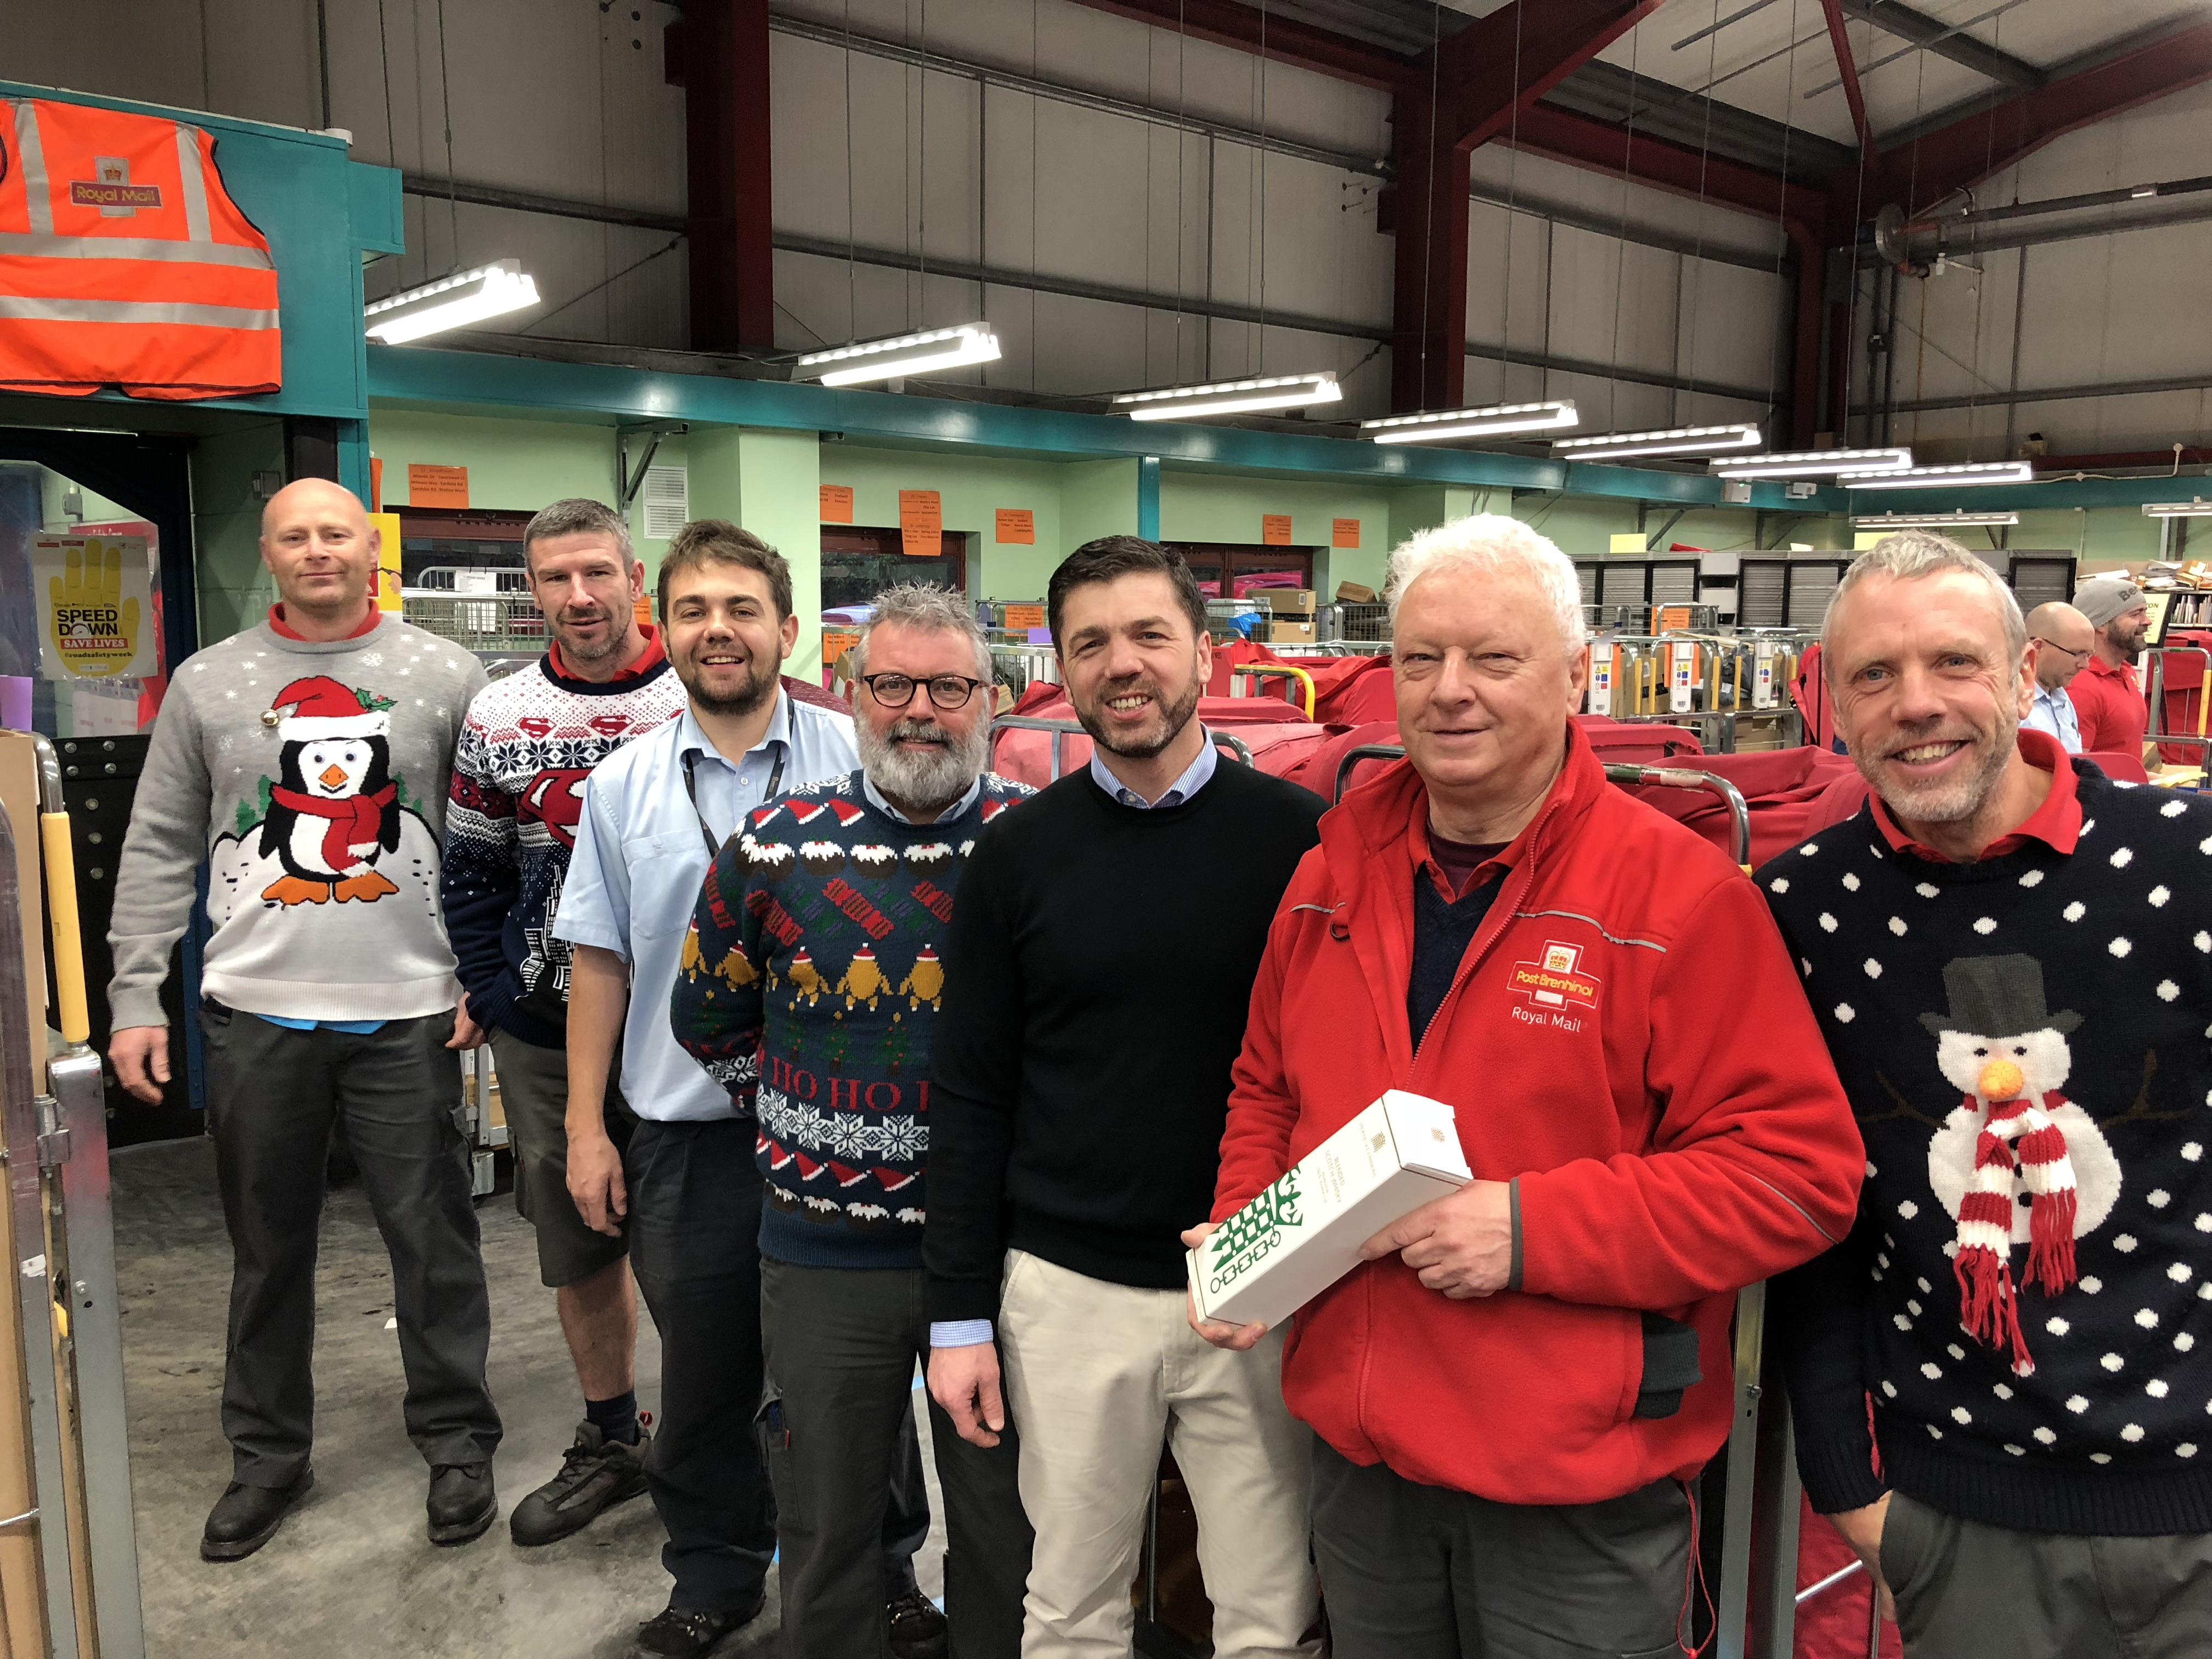 Haverfordwest mp visits royal mail office the pembrokeshire herald stephen crabb mp visited the royal mail haverfordwest delivery office this morning dec 15 to see first hand the impressive operation of delivering m4hsunfo